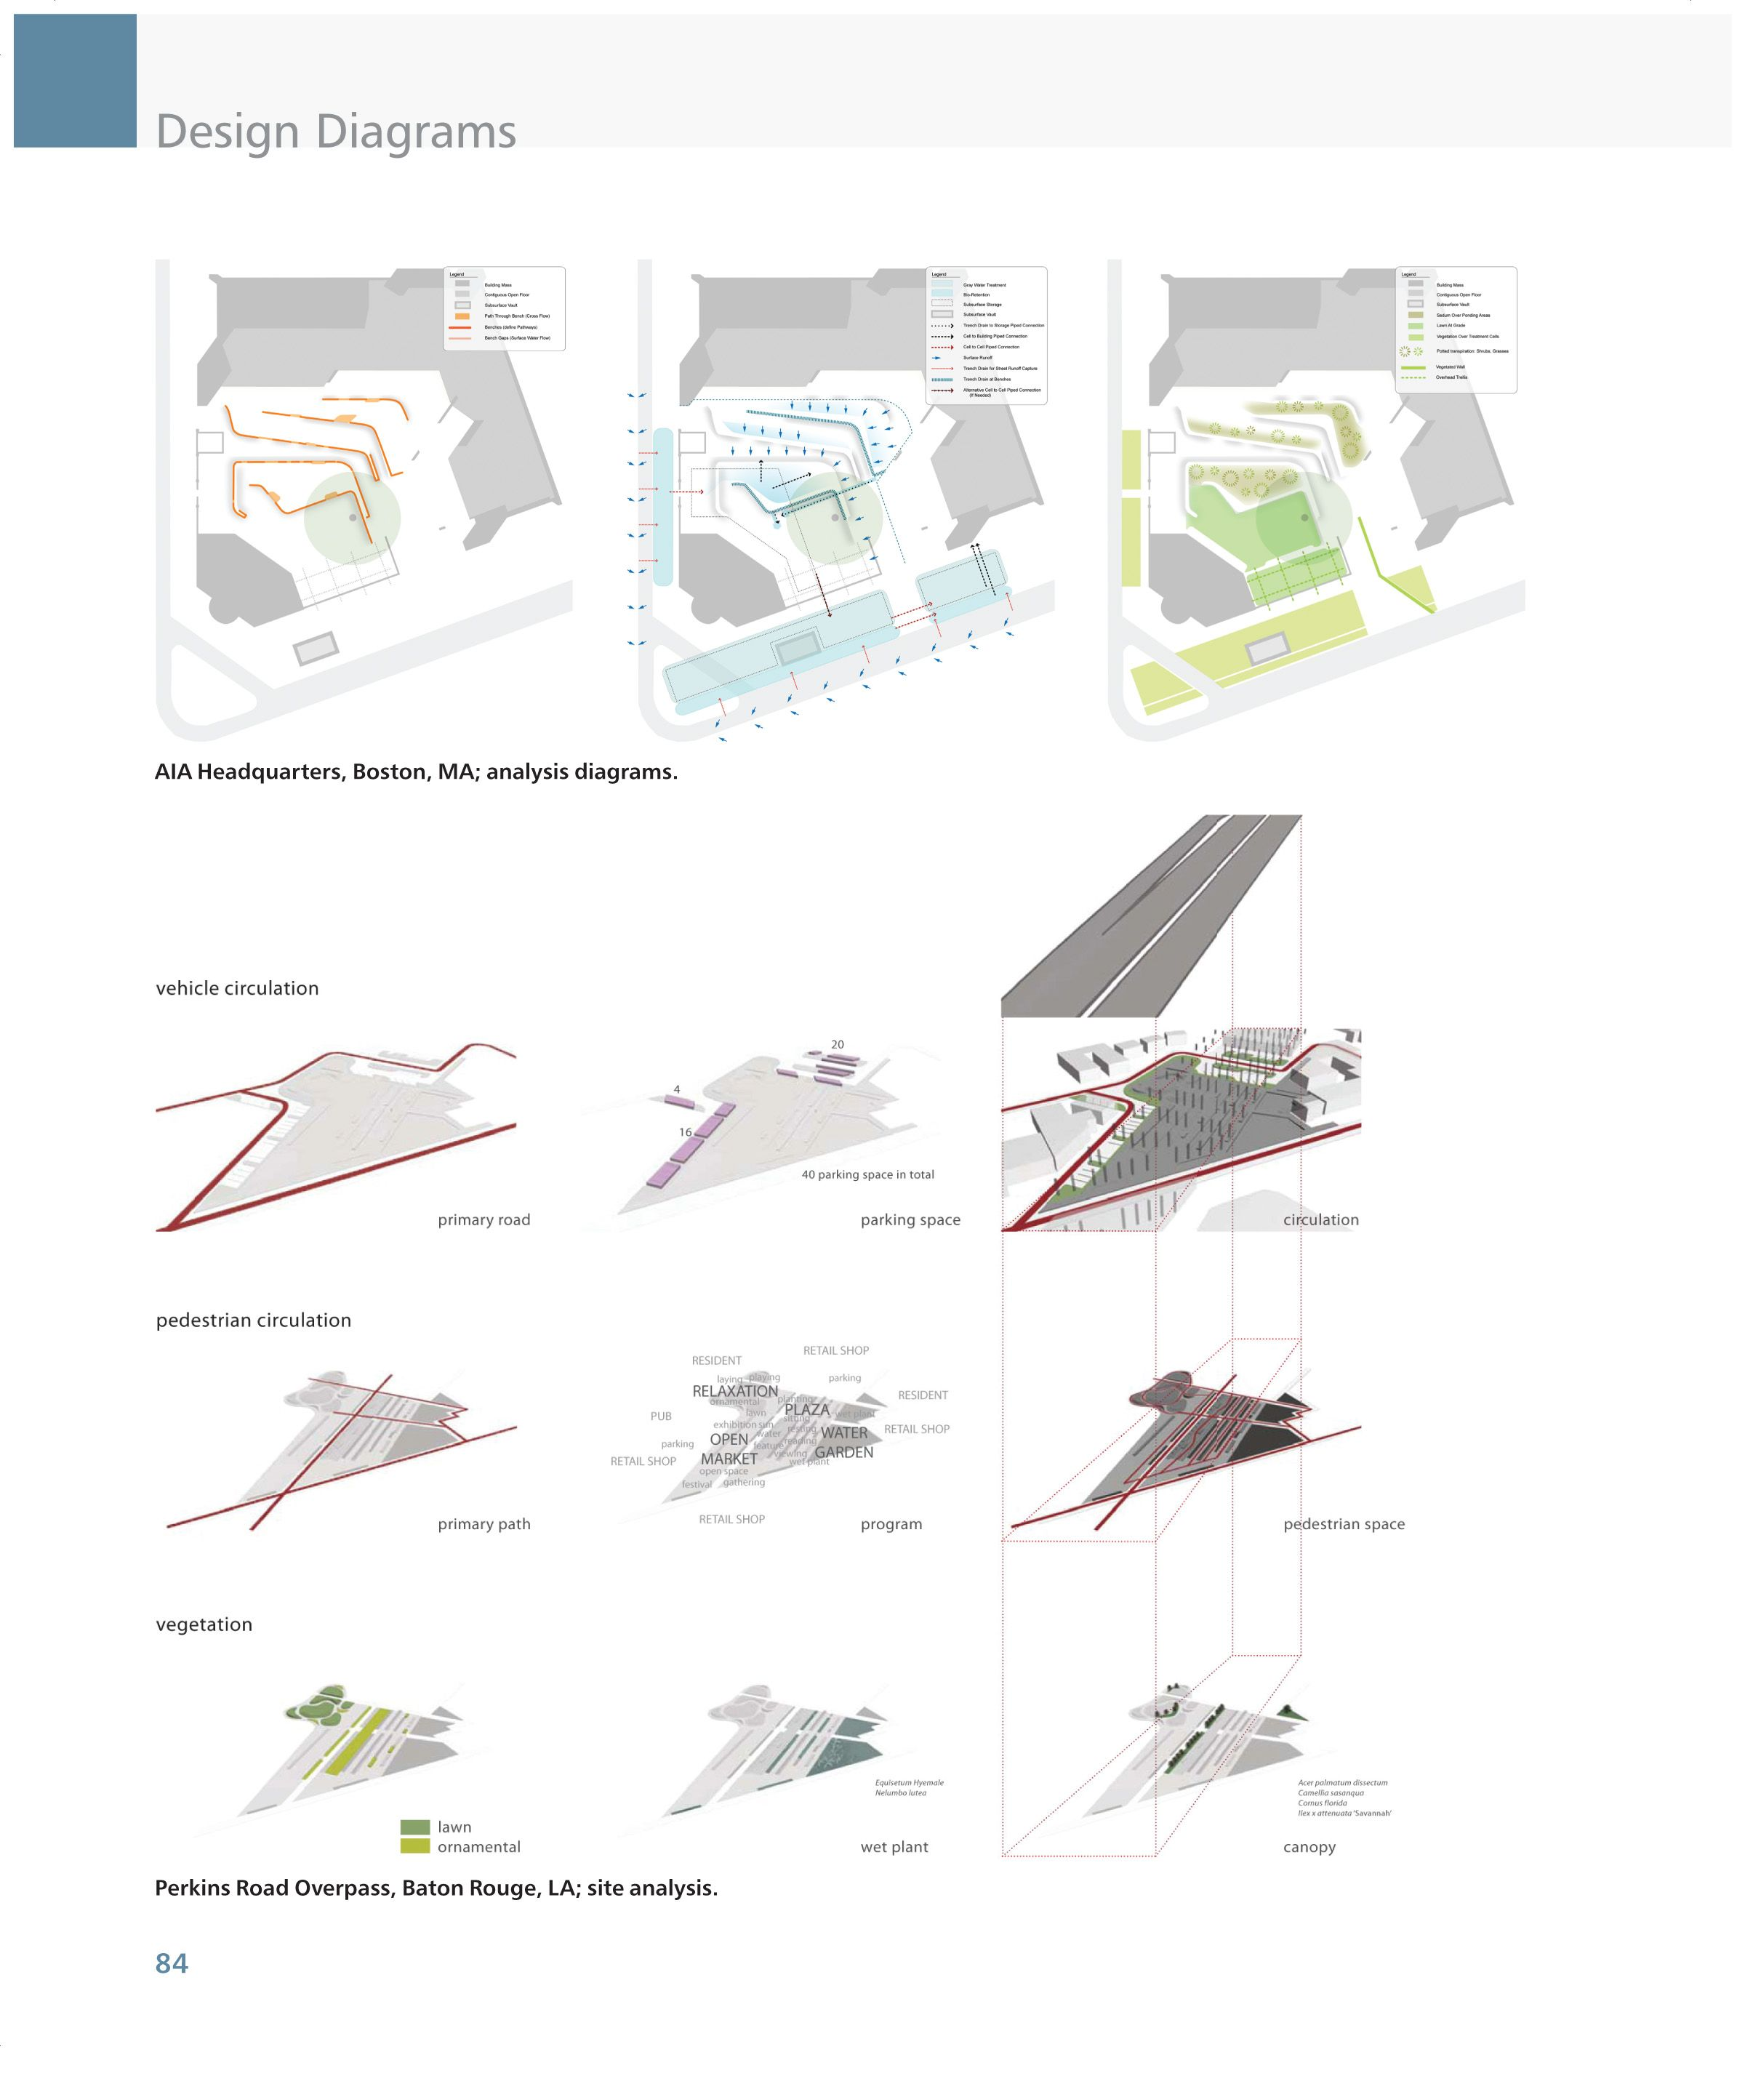 Landscape Concept Design Diagram Human Anatomy Major Arteries Http Asla Org 2012awards Images Largescale 168 04